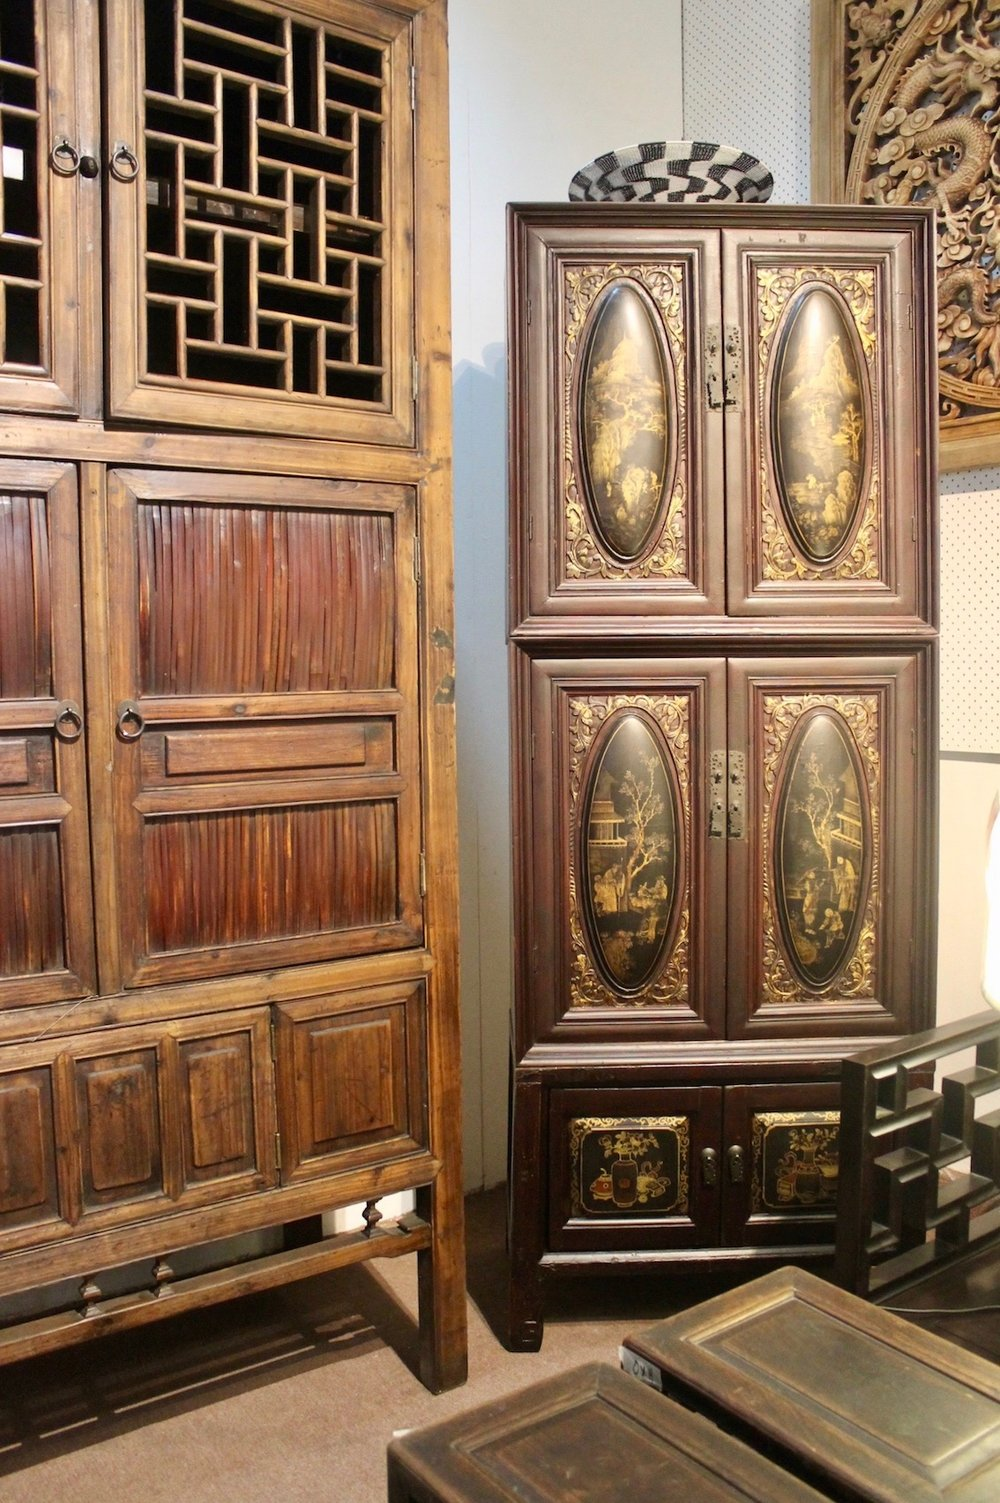 Tall bamboo & elm kitchen cabinet from Zhejiang; an antique 3-tier lacquered cabinet from Teochew